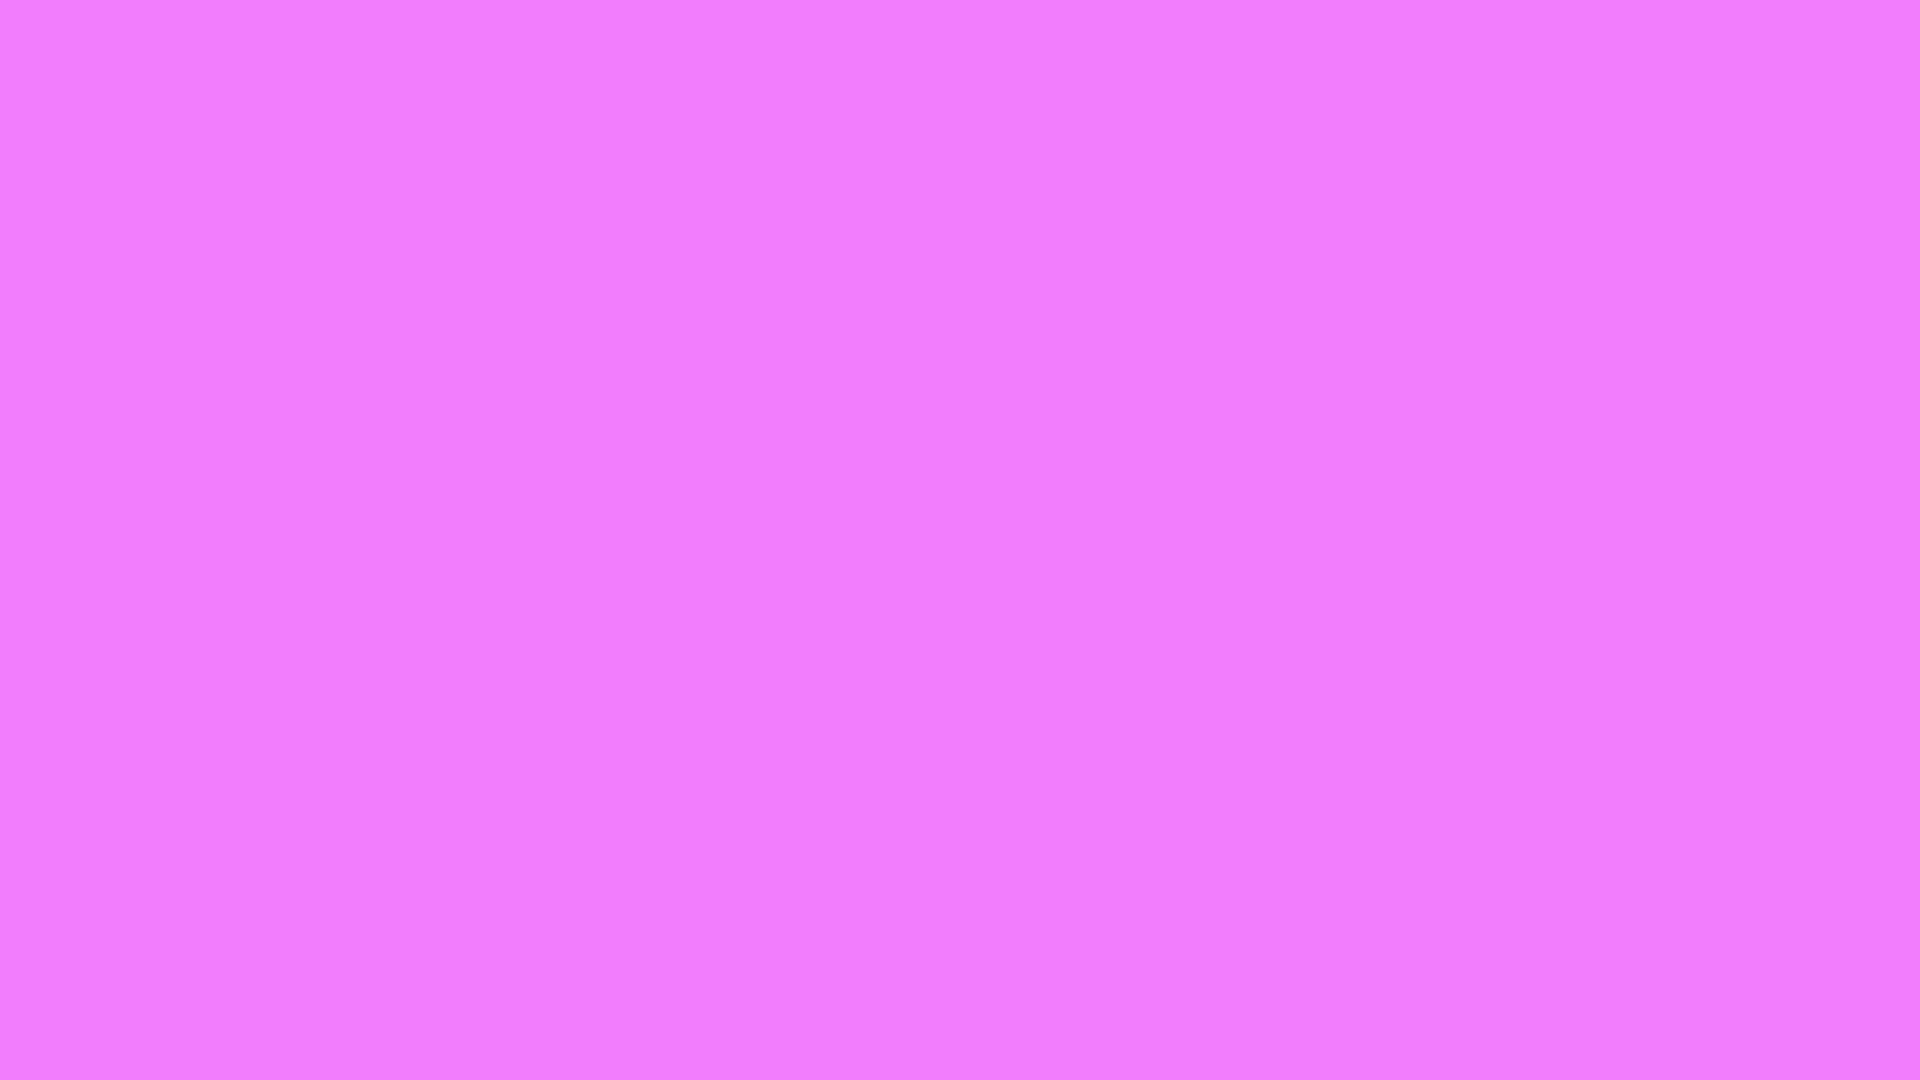 ViceCity Pink Color Palette